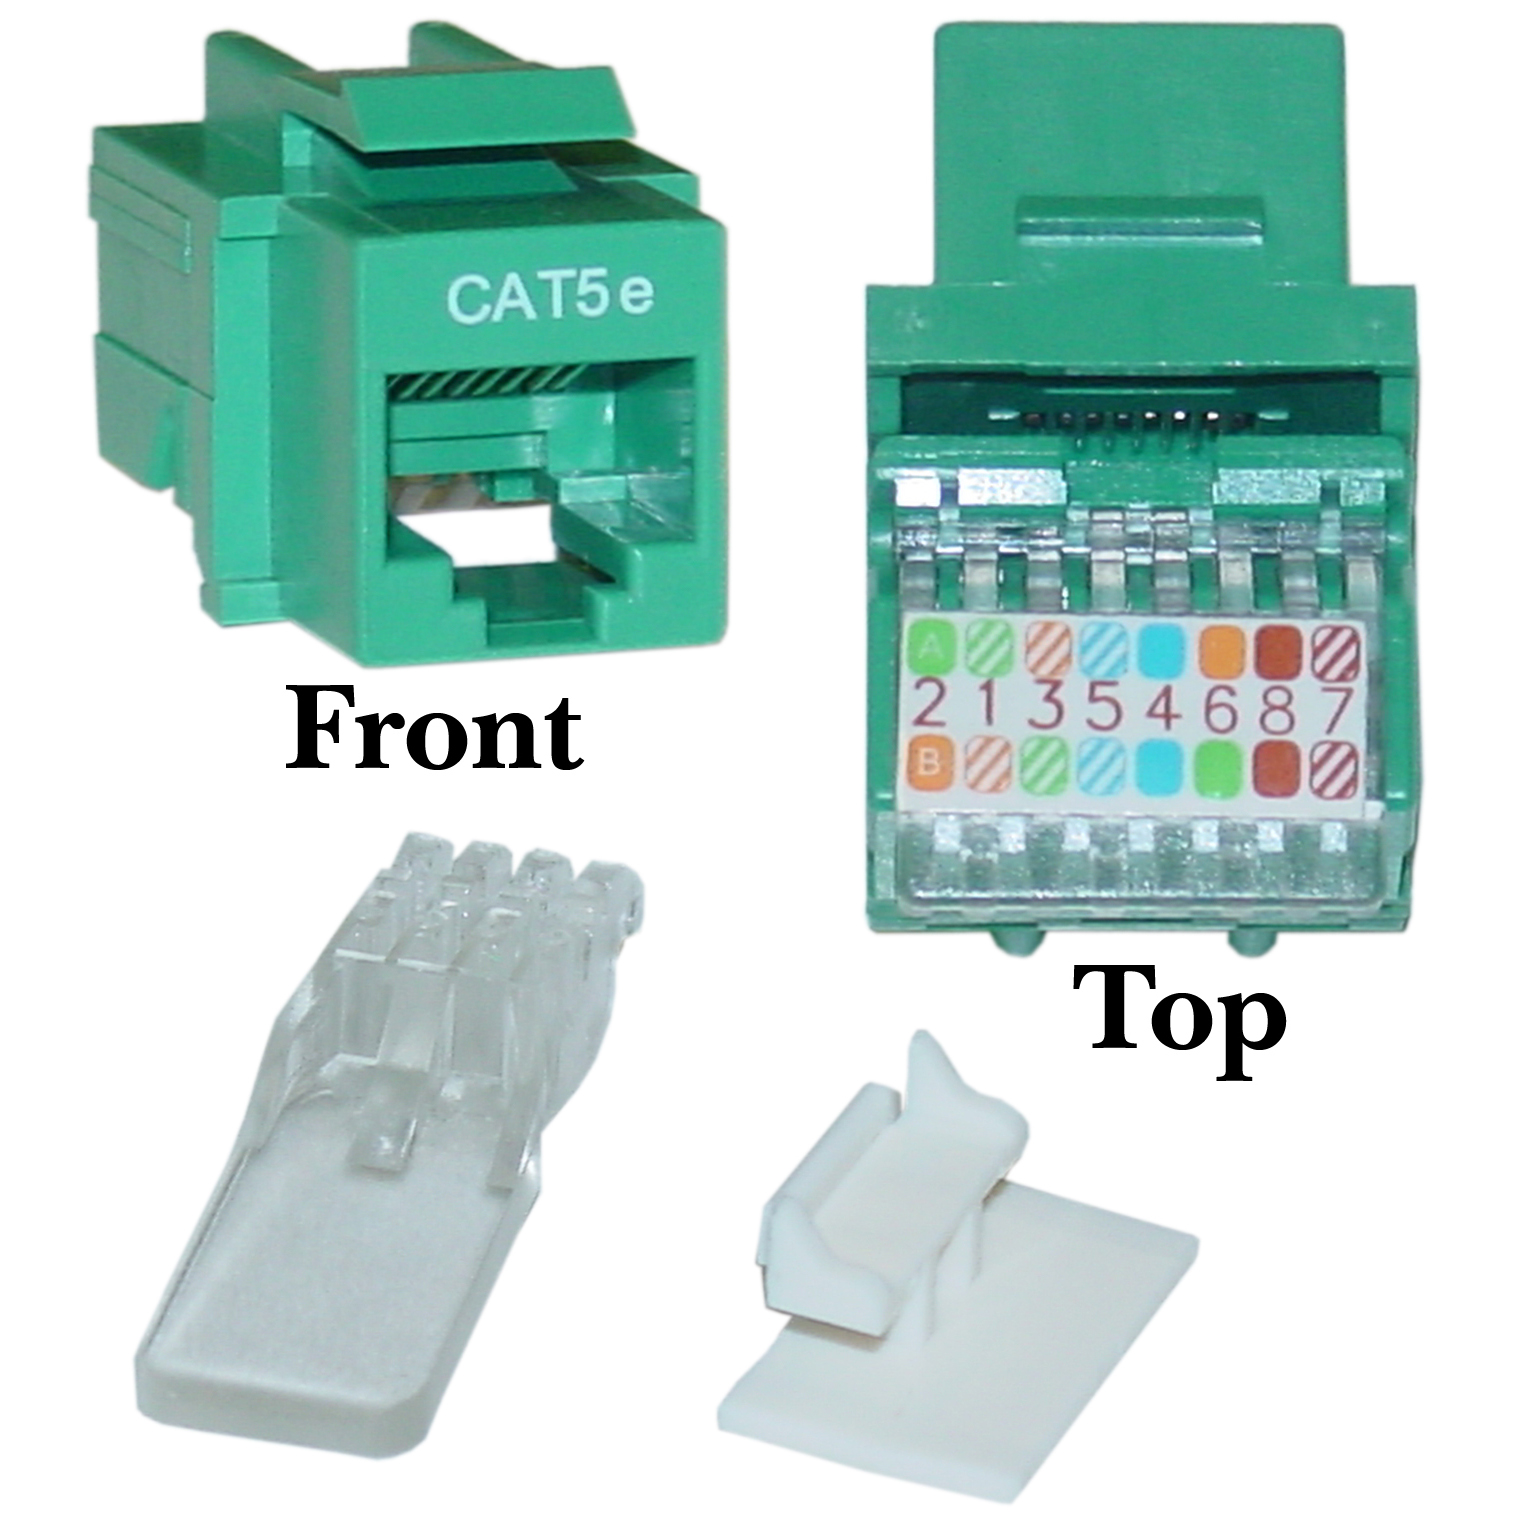 Cat5e Pinout Diagram